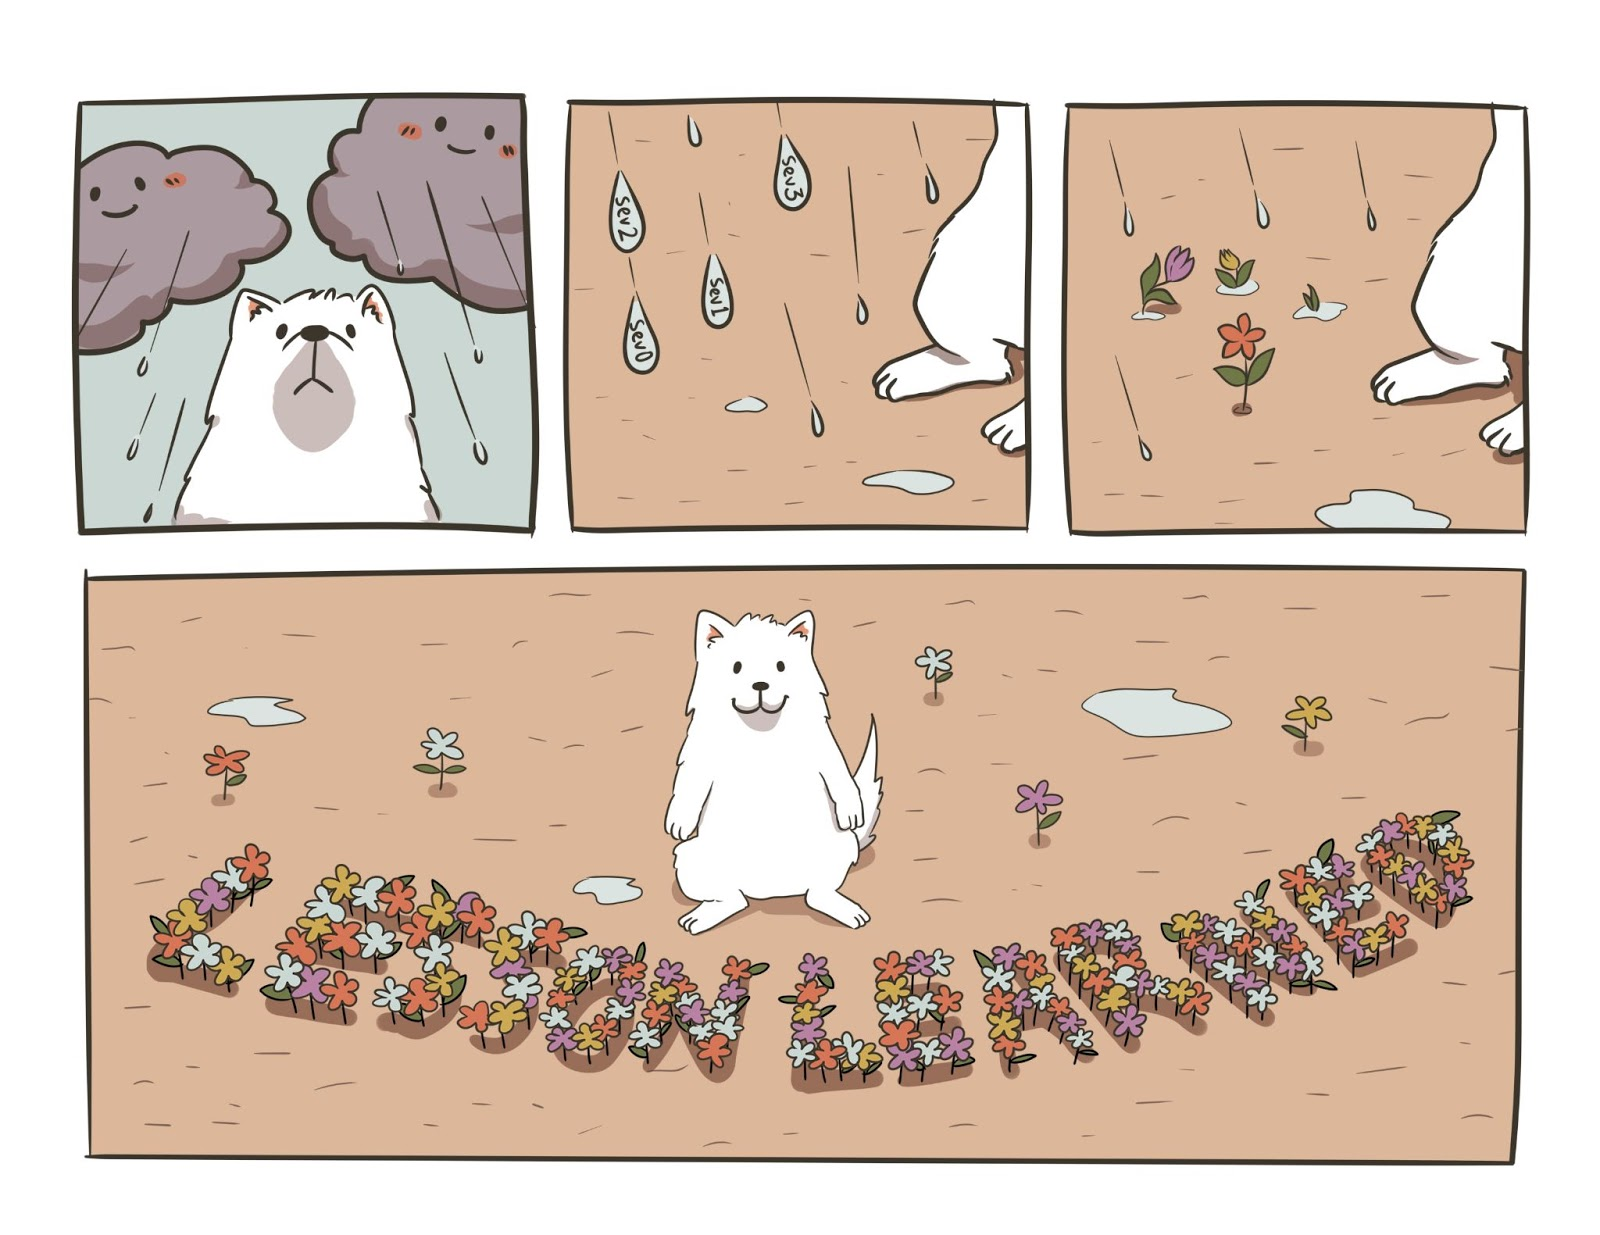 "Comic. Panel 1: White dog in the rain with grey clouds above. Panel 2: Raindrops coming down with Sev0, Sev1, etc in the droplets. Panel 3: flowers growing from the rain. Panel 4: flowers grow into clumps that spell out ""Lesson Learned."""